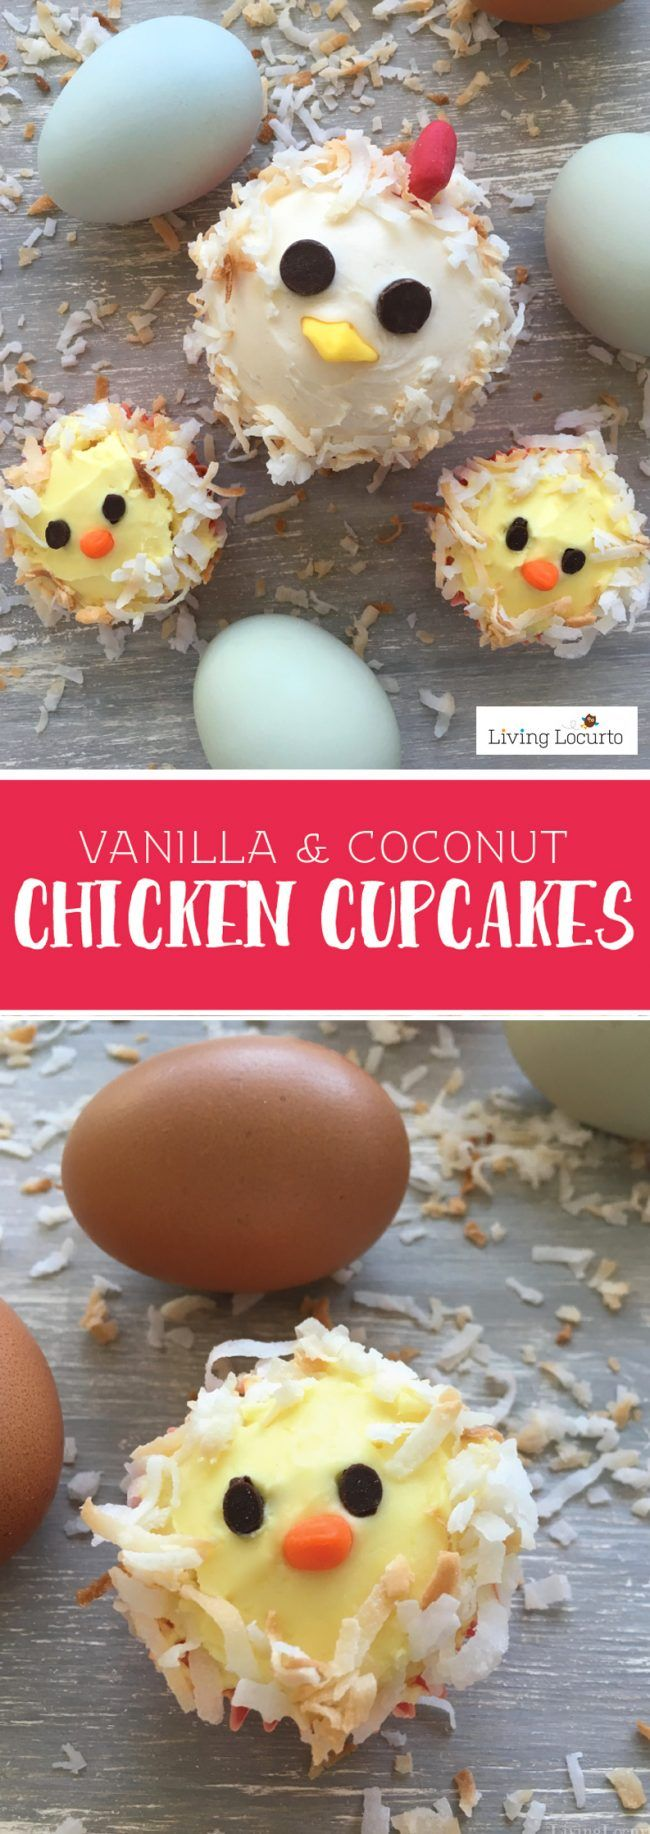 Backyard chicken lovers will fly the coop over these cute cakes! Mama chicken cupcakes and baby chicks are an adorable party idea! These cute chicken cakes are a perfect way to celebrate a birthday, Easter or baby shower. LivingLocurto.com